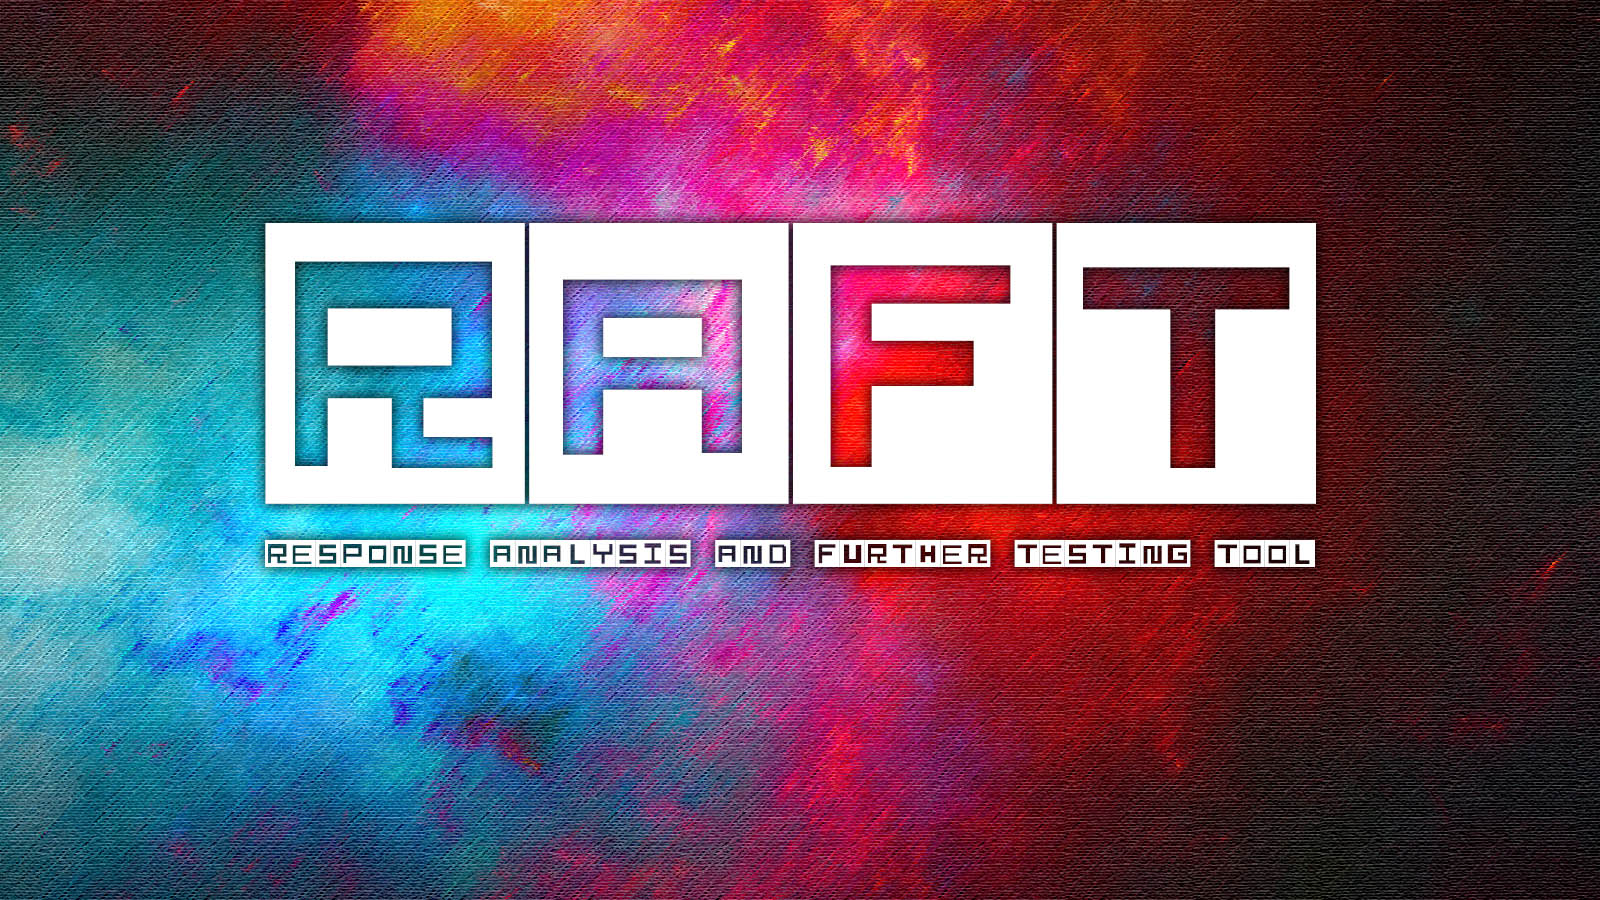 RAFT - Response Analysis and Further Testing Tool